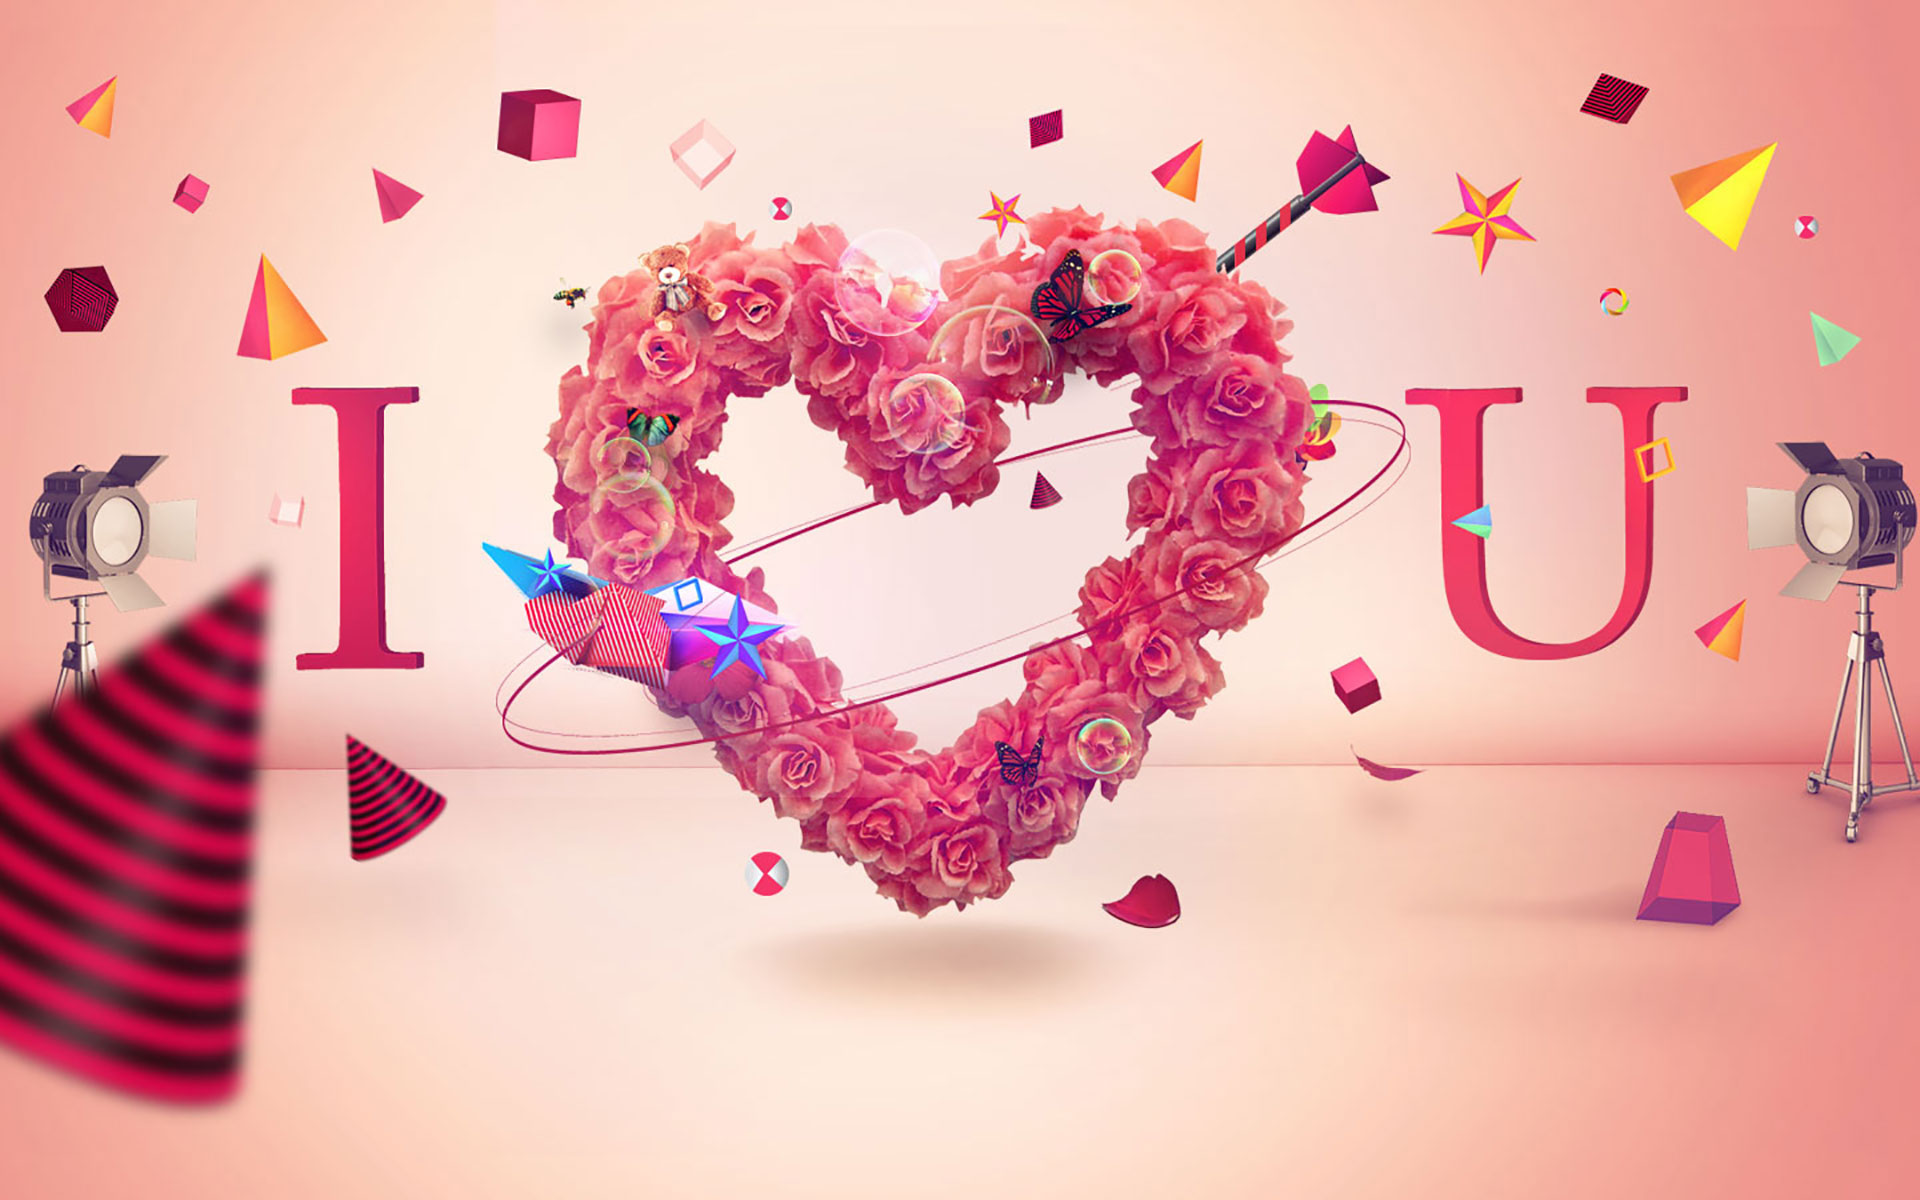 25 Free HD I Love You Wallpapers